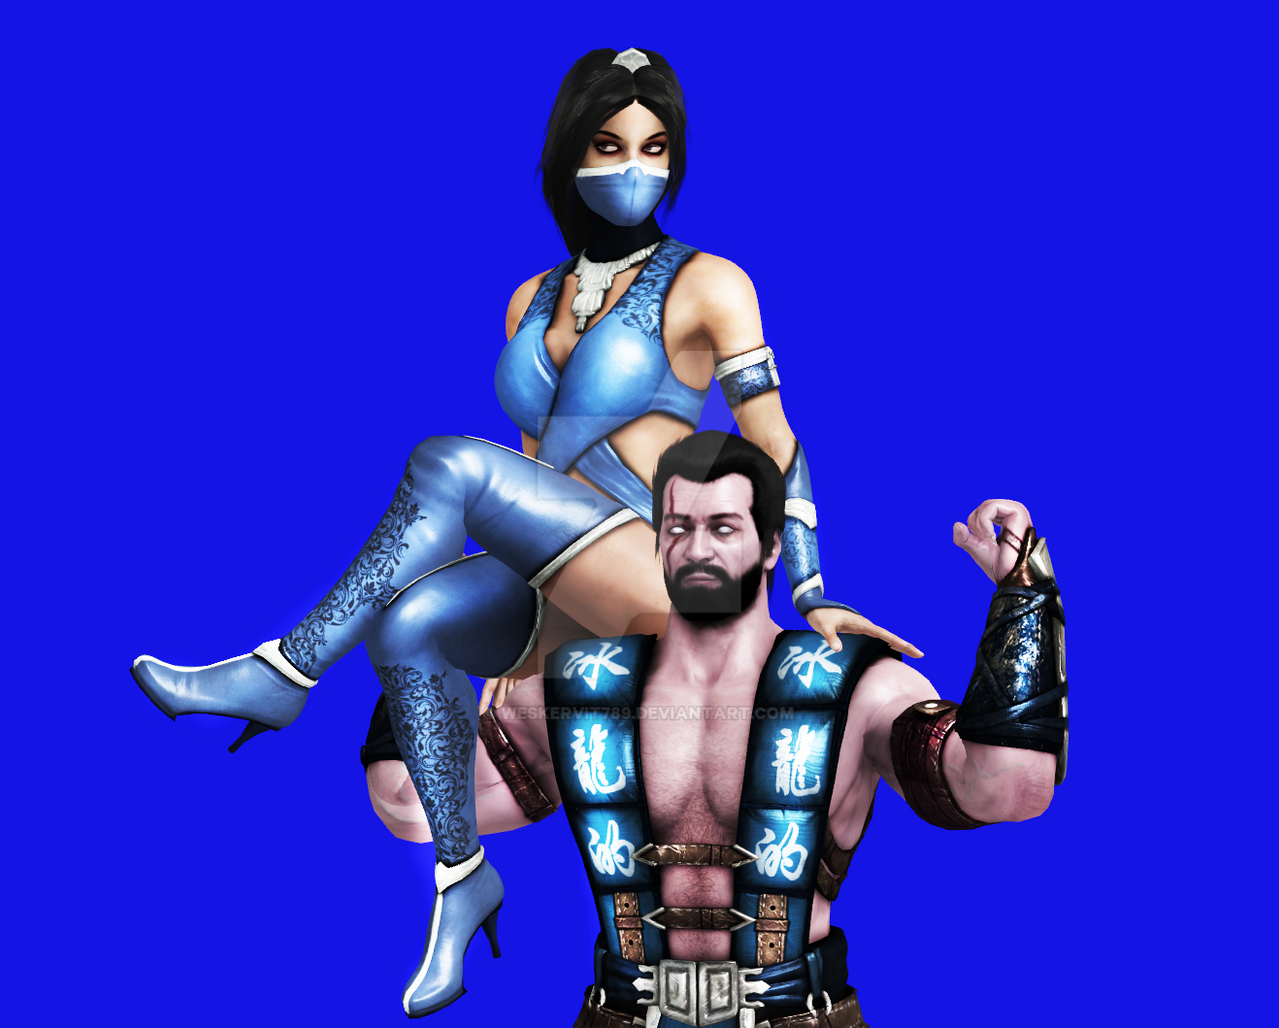 Mortal kombat kitana and sub zero kiss